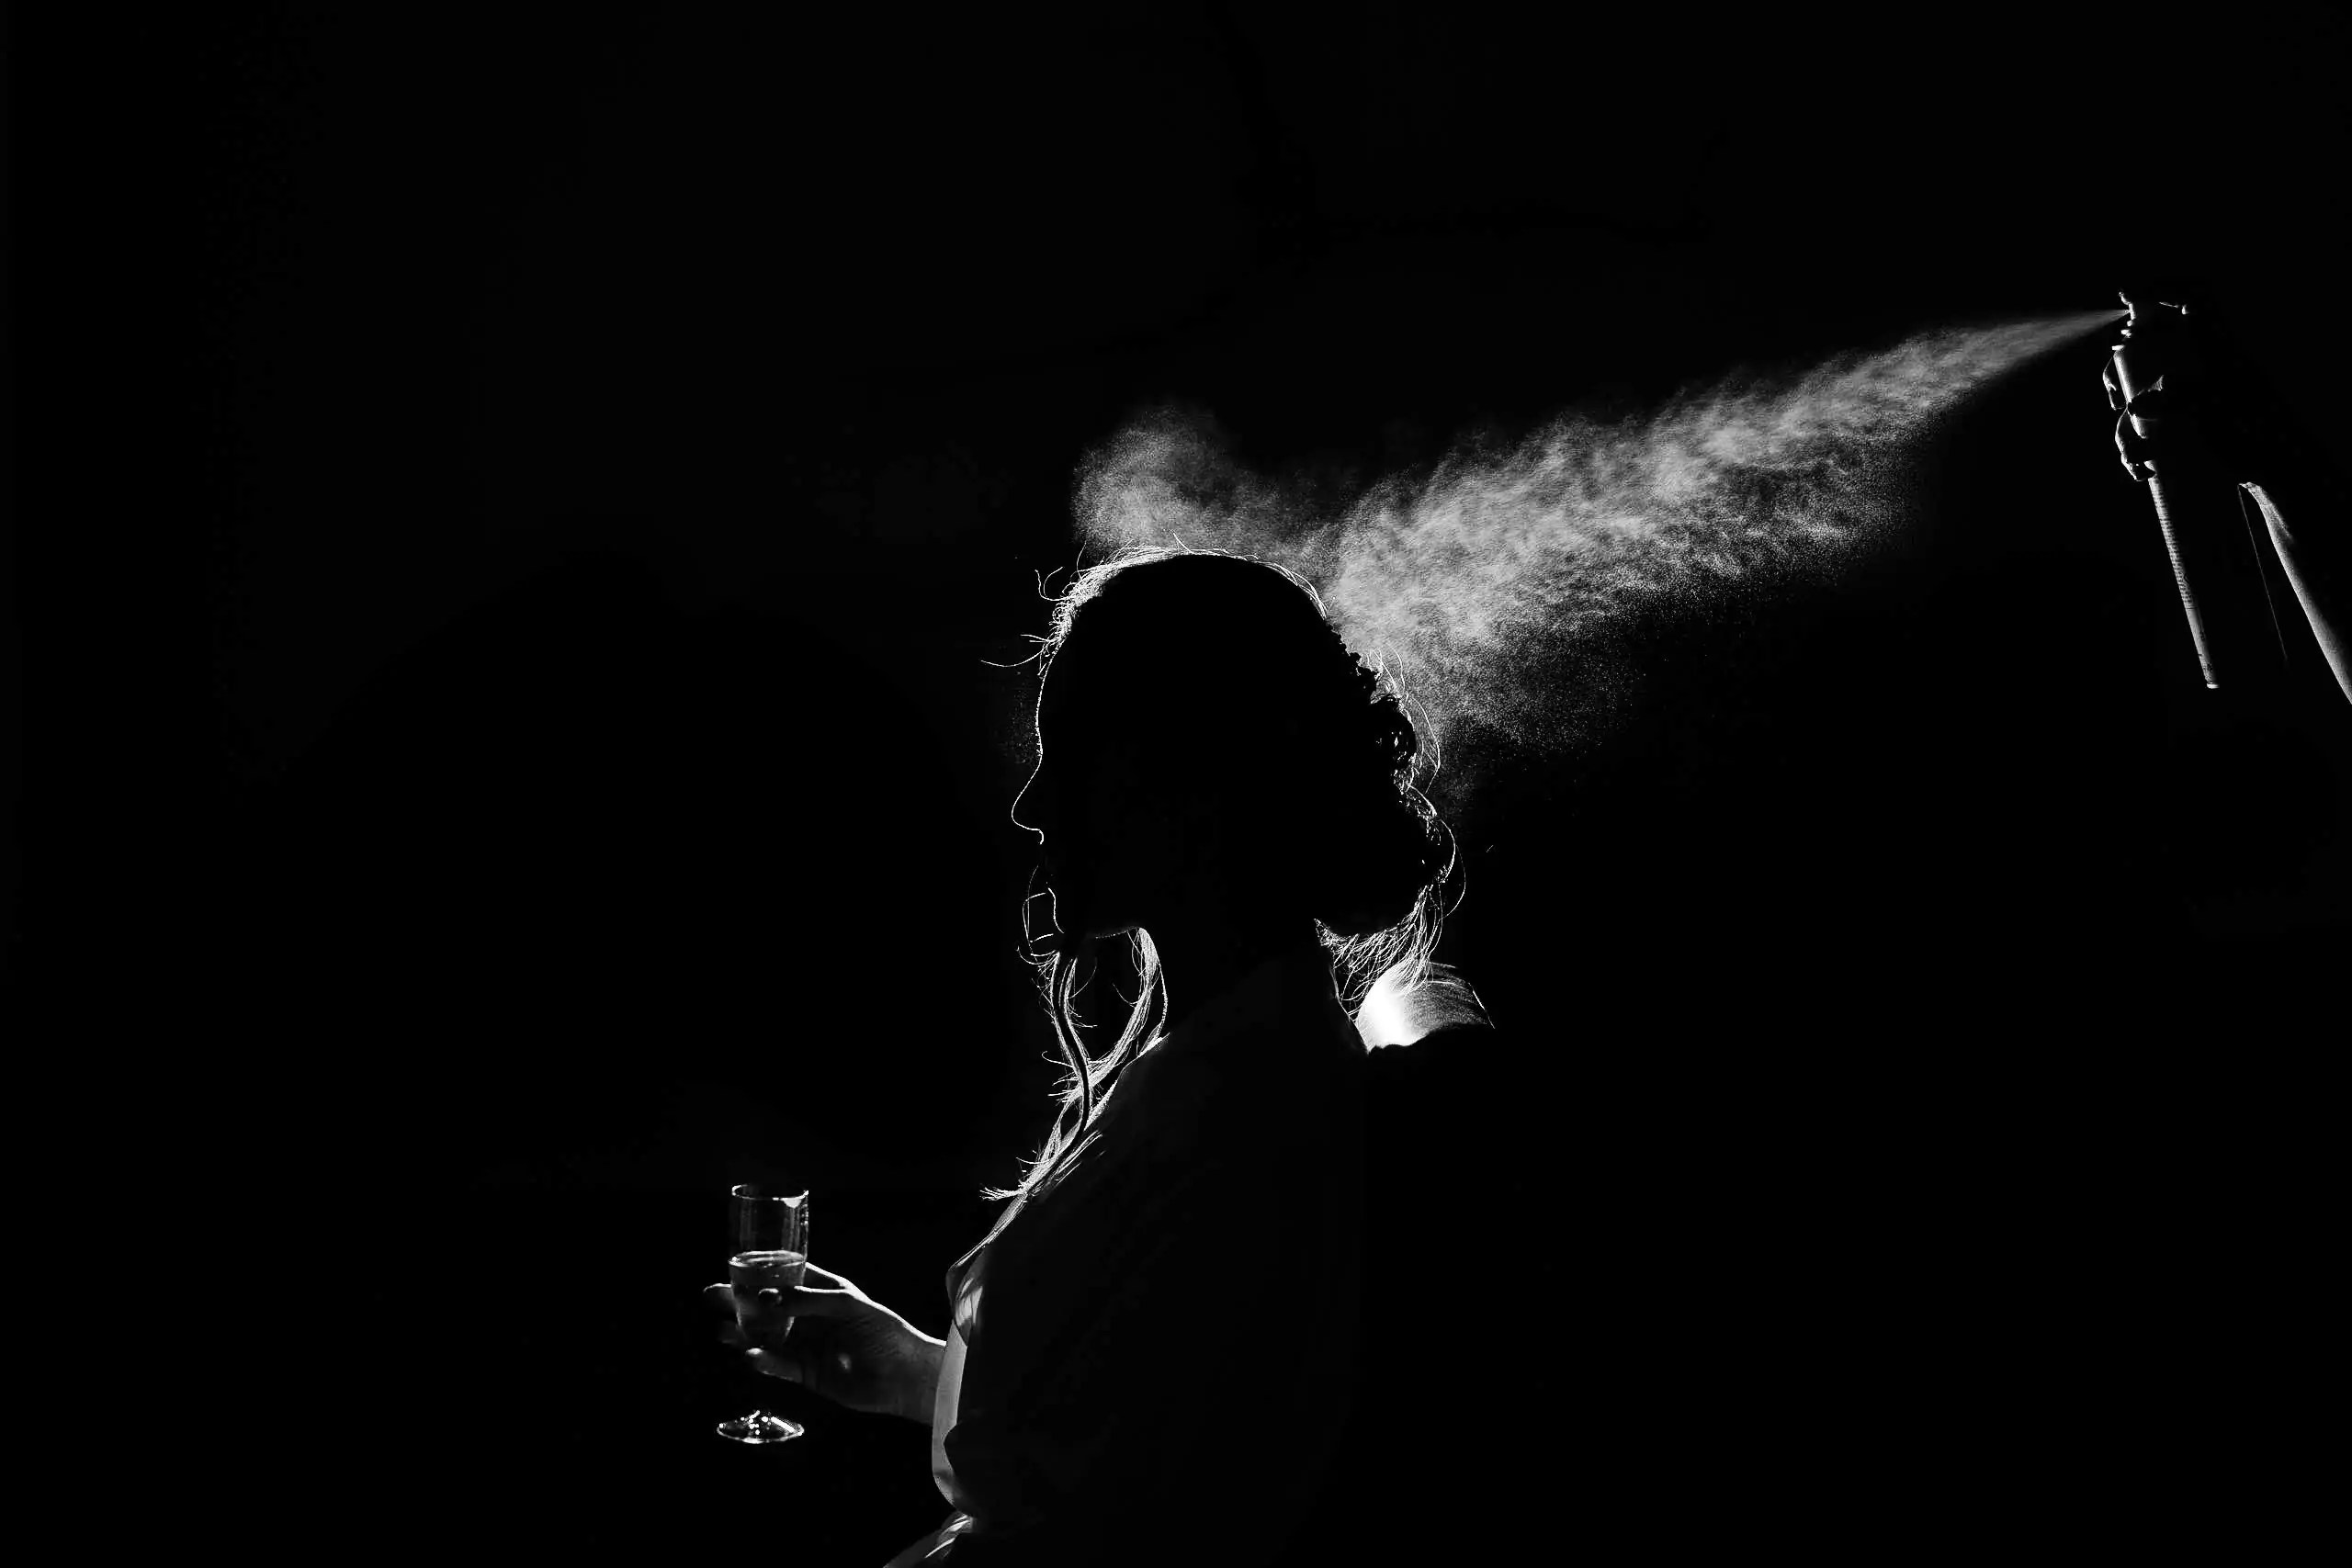 An artistic black and white shot of a bride during bridal preparations